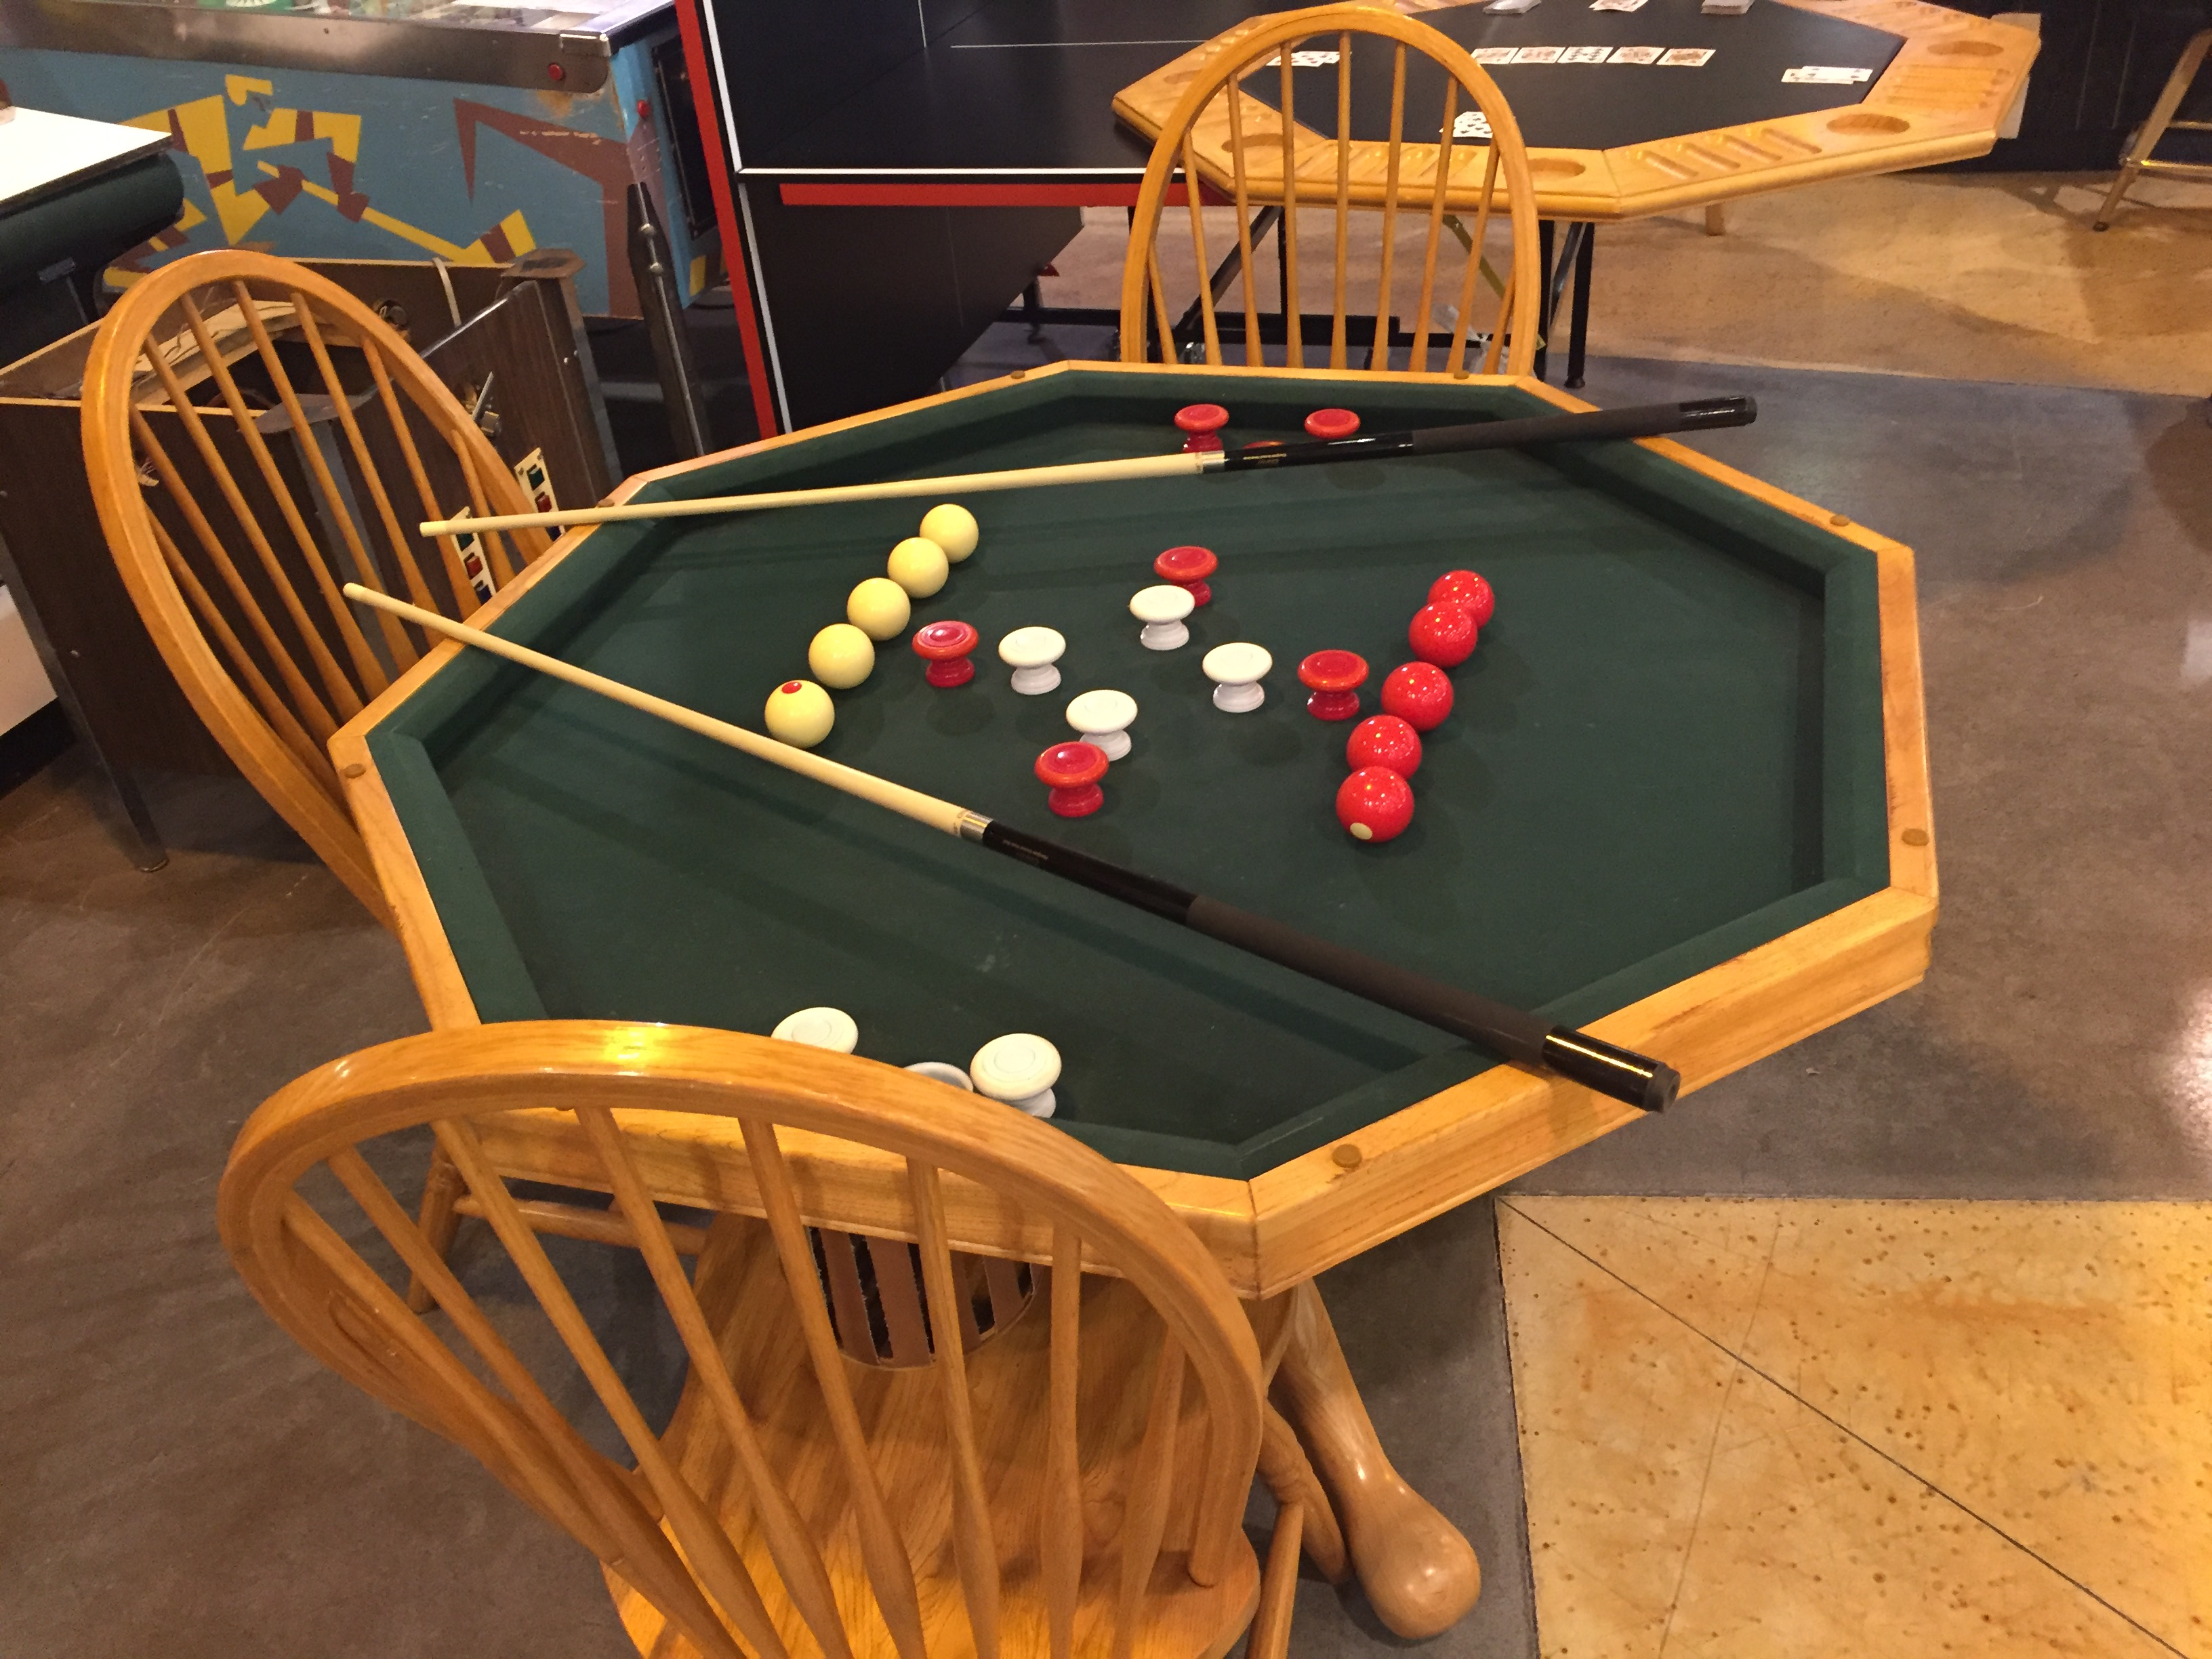 48 Inch 3 In 1 Game Table Oak Finish Top With Cup Chip Holders Per Pool Accessories Four 4 Matching Chairs